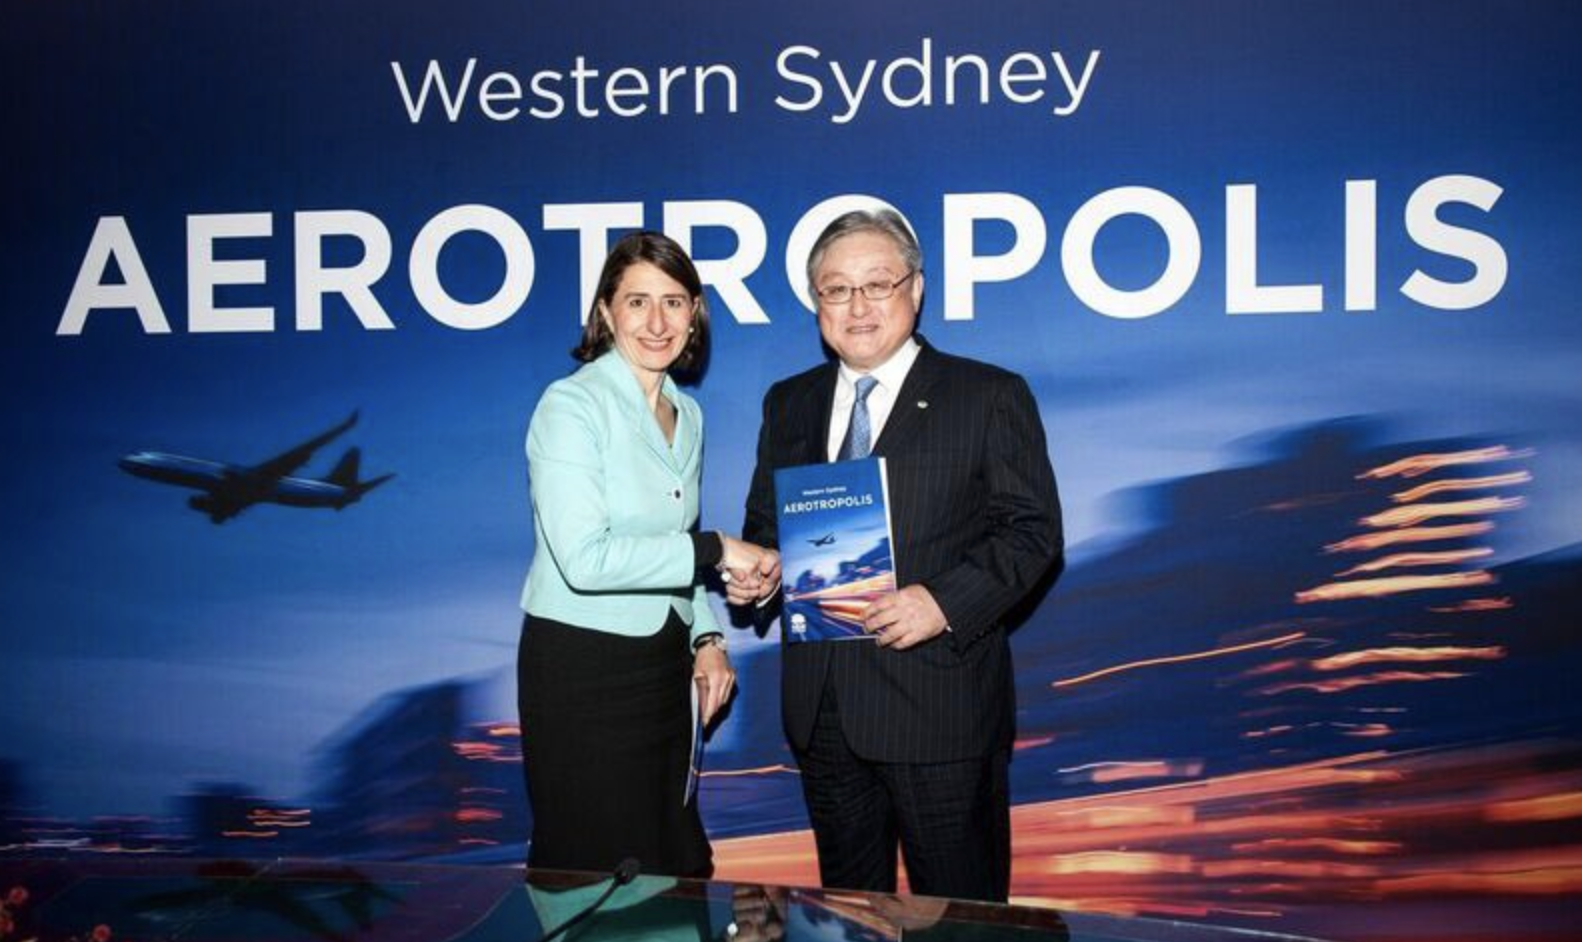 Hitachi is the latest company to invest in western Sydney Aerotropolis